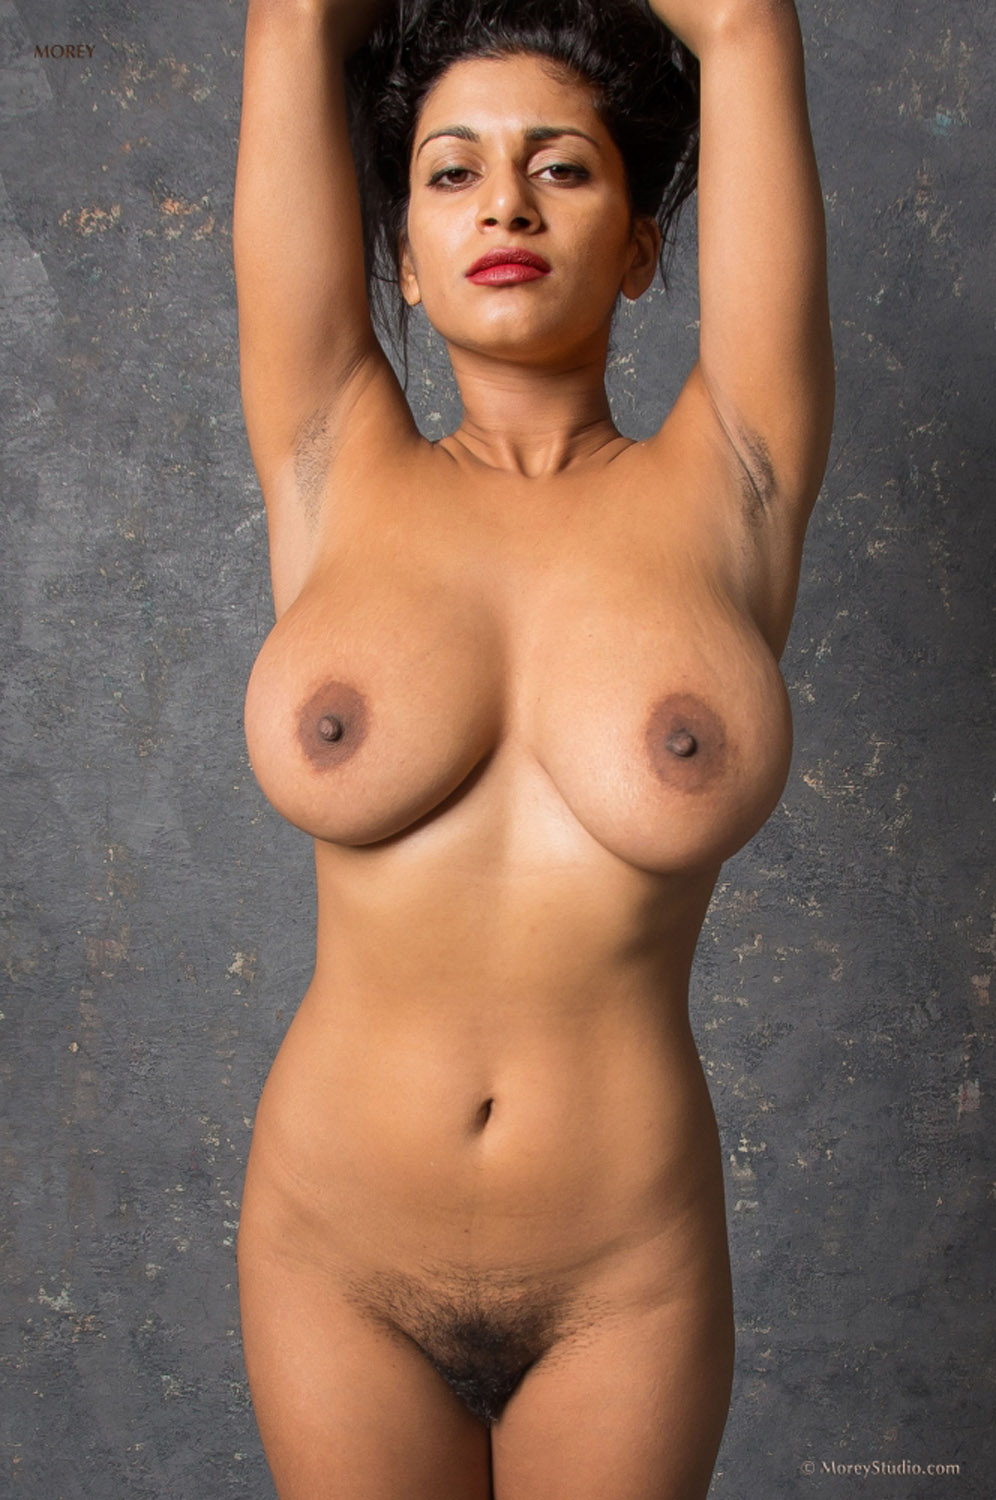 nude amazon woman pictures